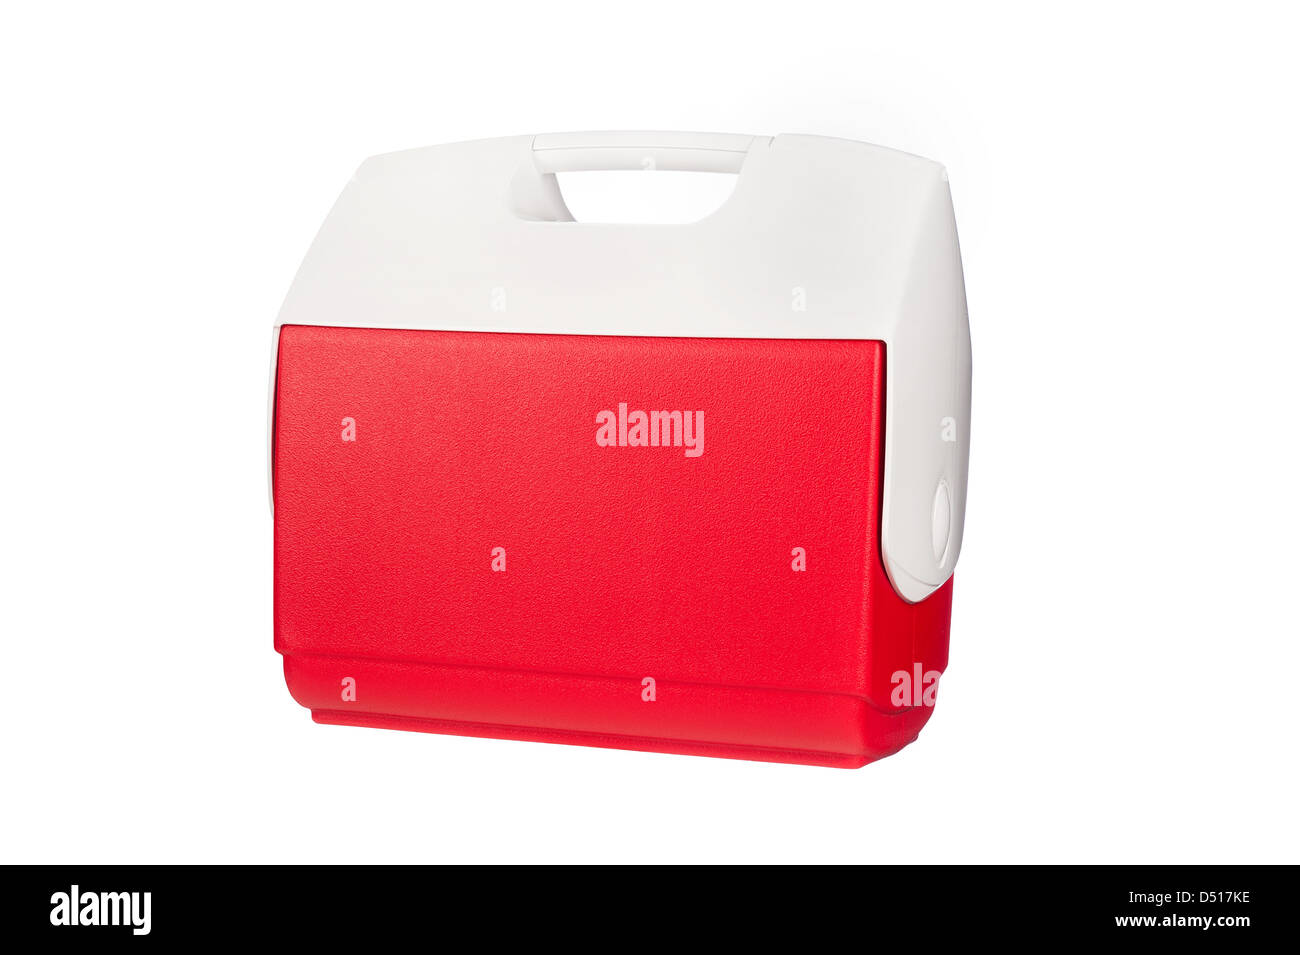 A red ice chest cooler isolated on a white background - Stock Image